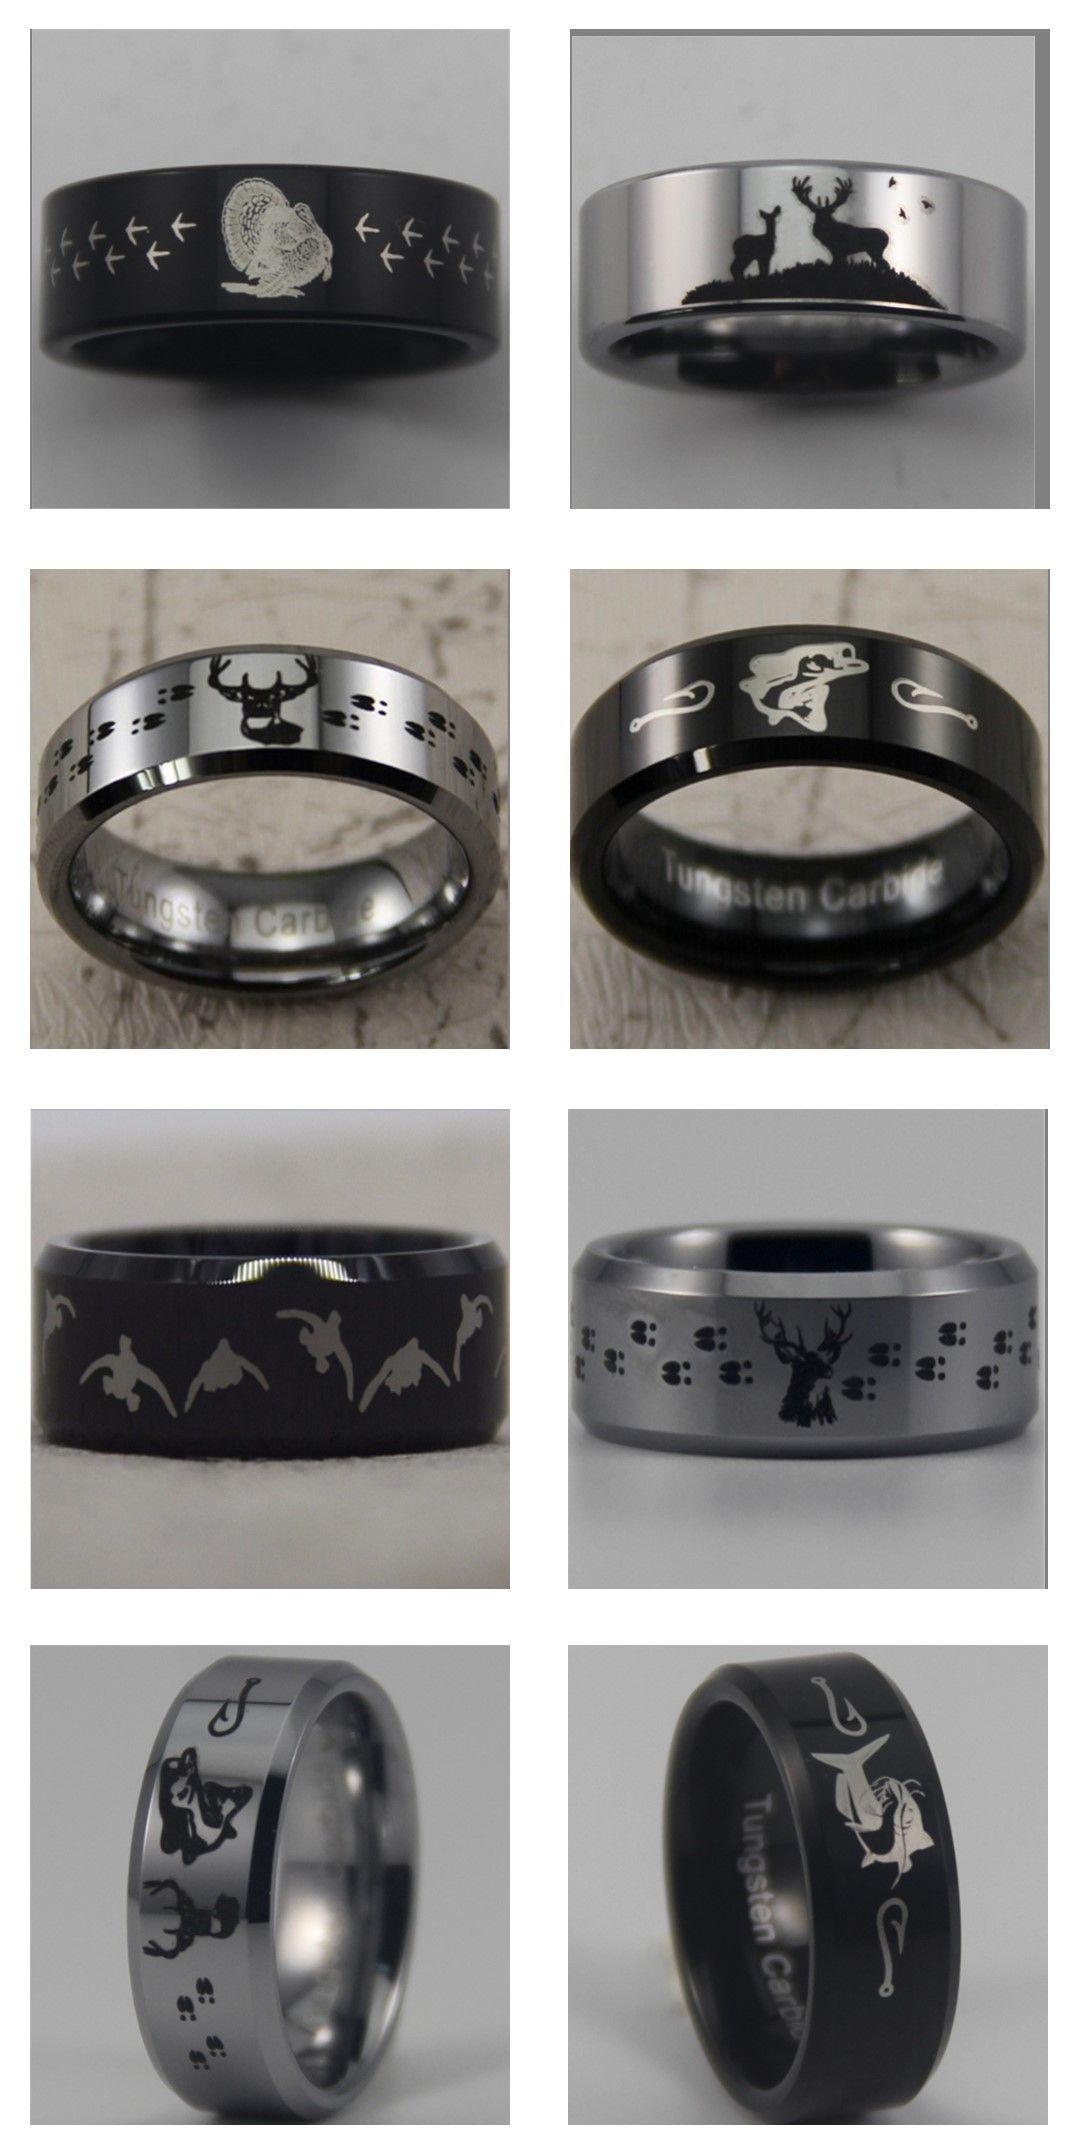 duck band wedding ring Hunting outdoor themed tungsten carbide rings Turkey catfish bass deer Mens Wedding Bands